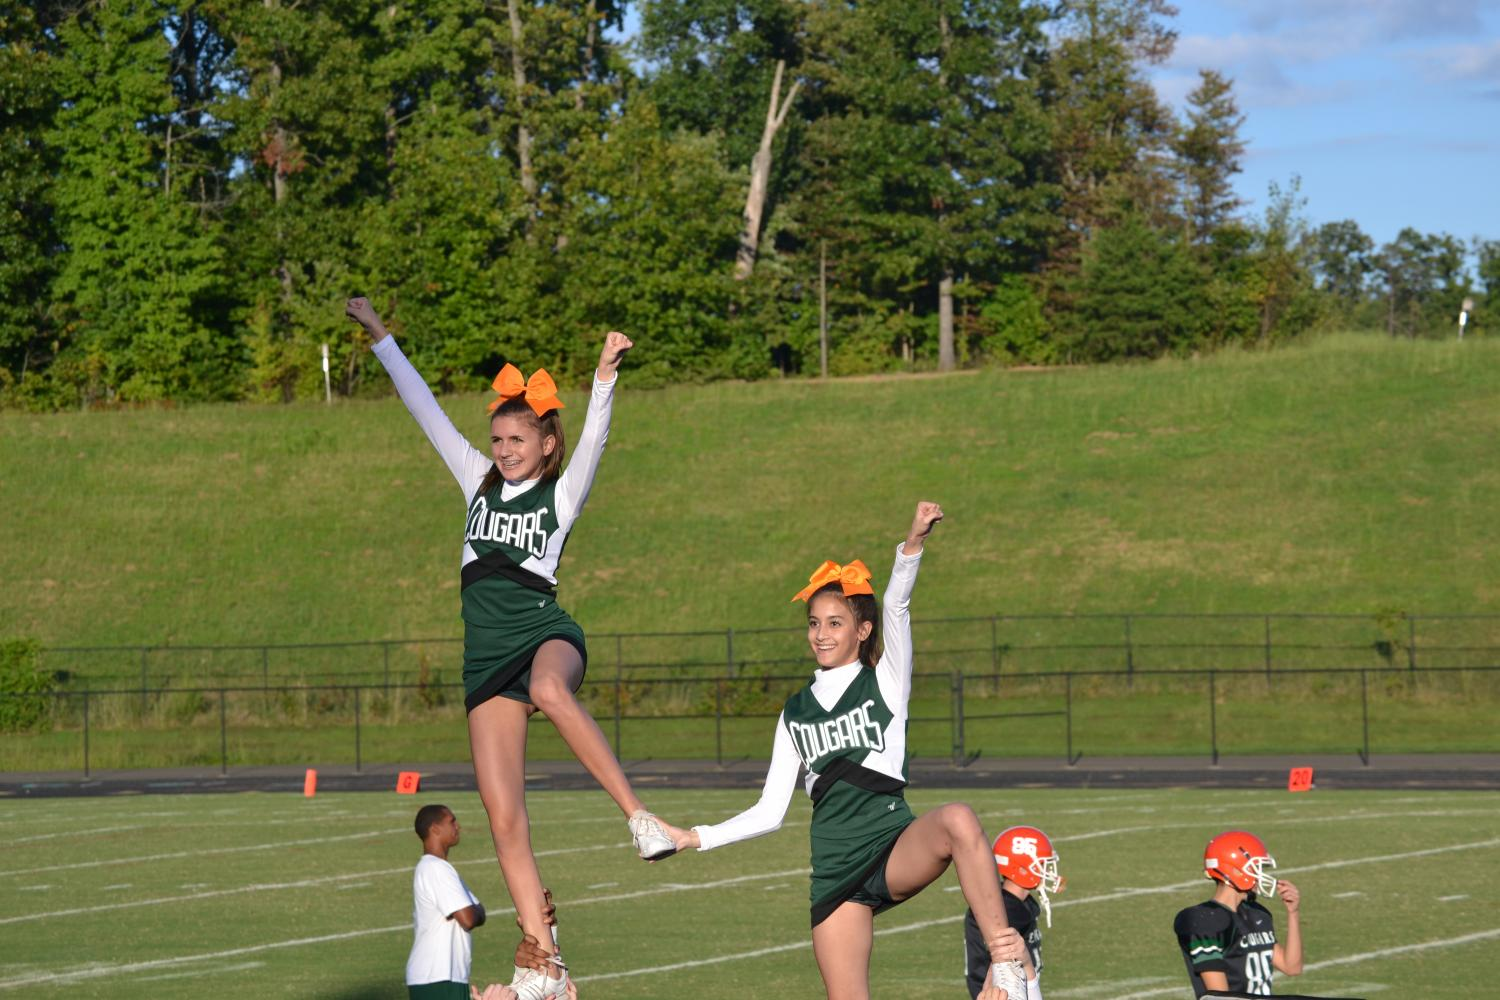 JV Cheerleaders hype up the crowd during a JV Football game.